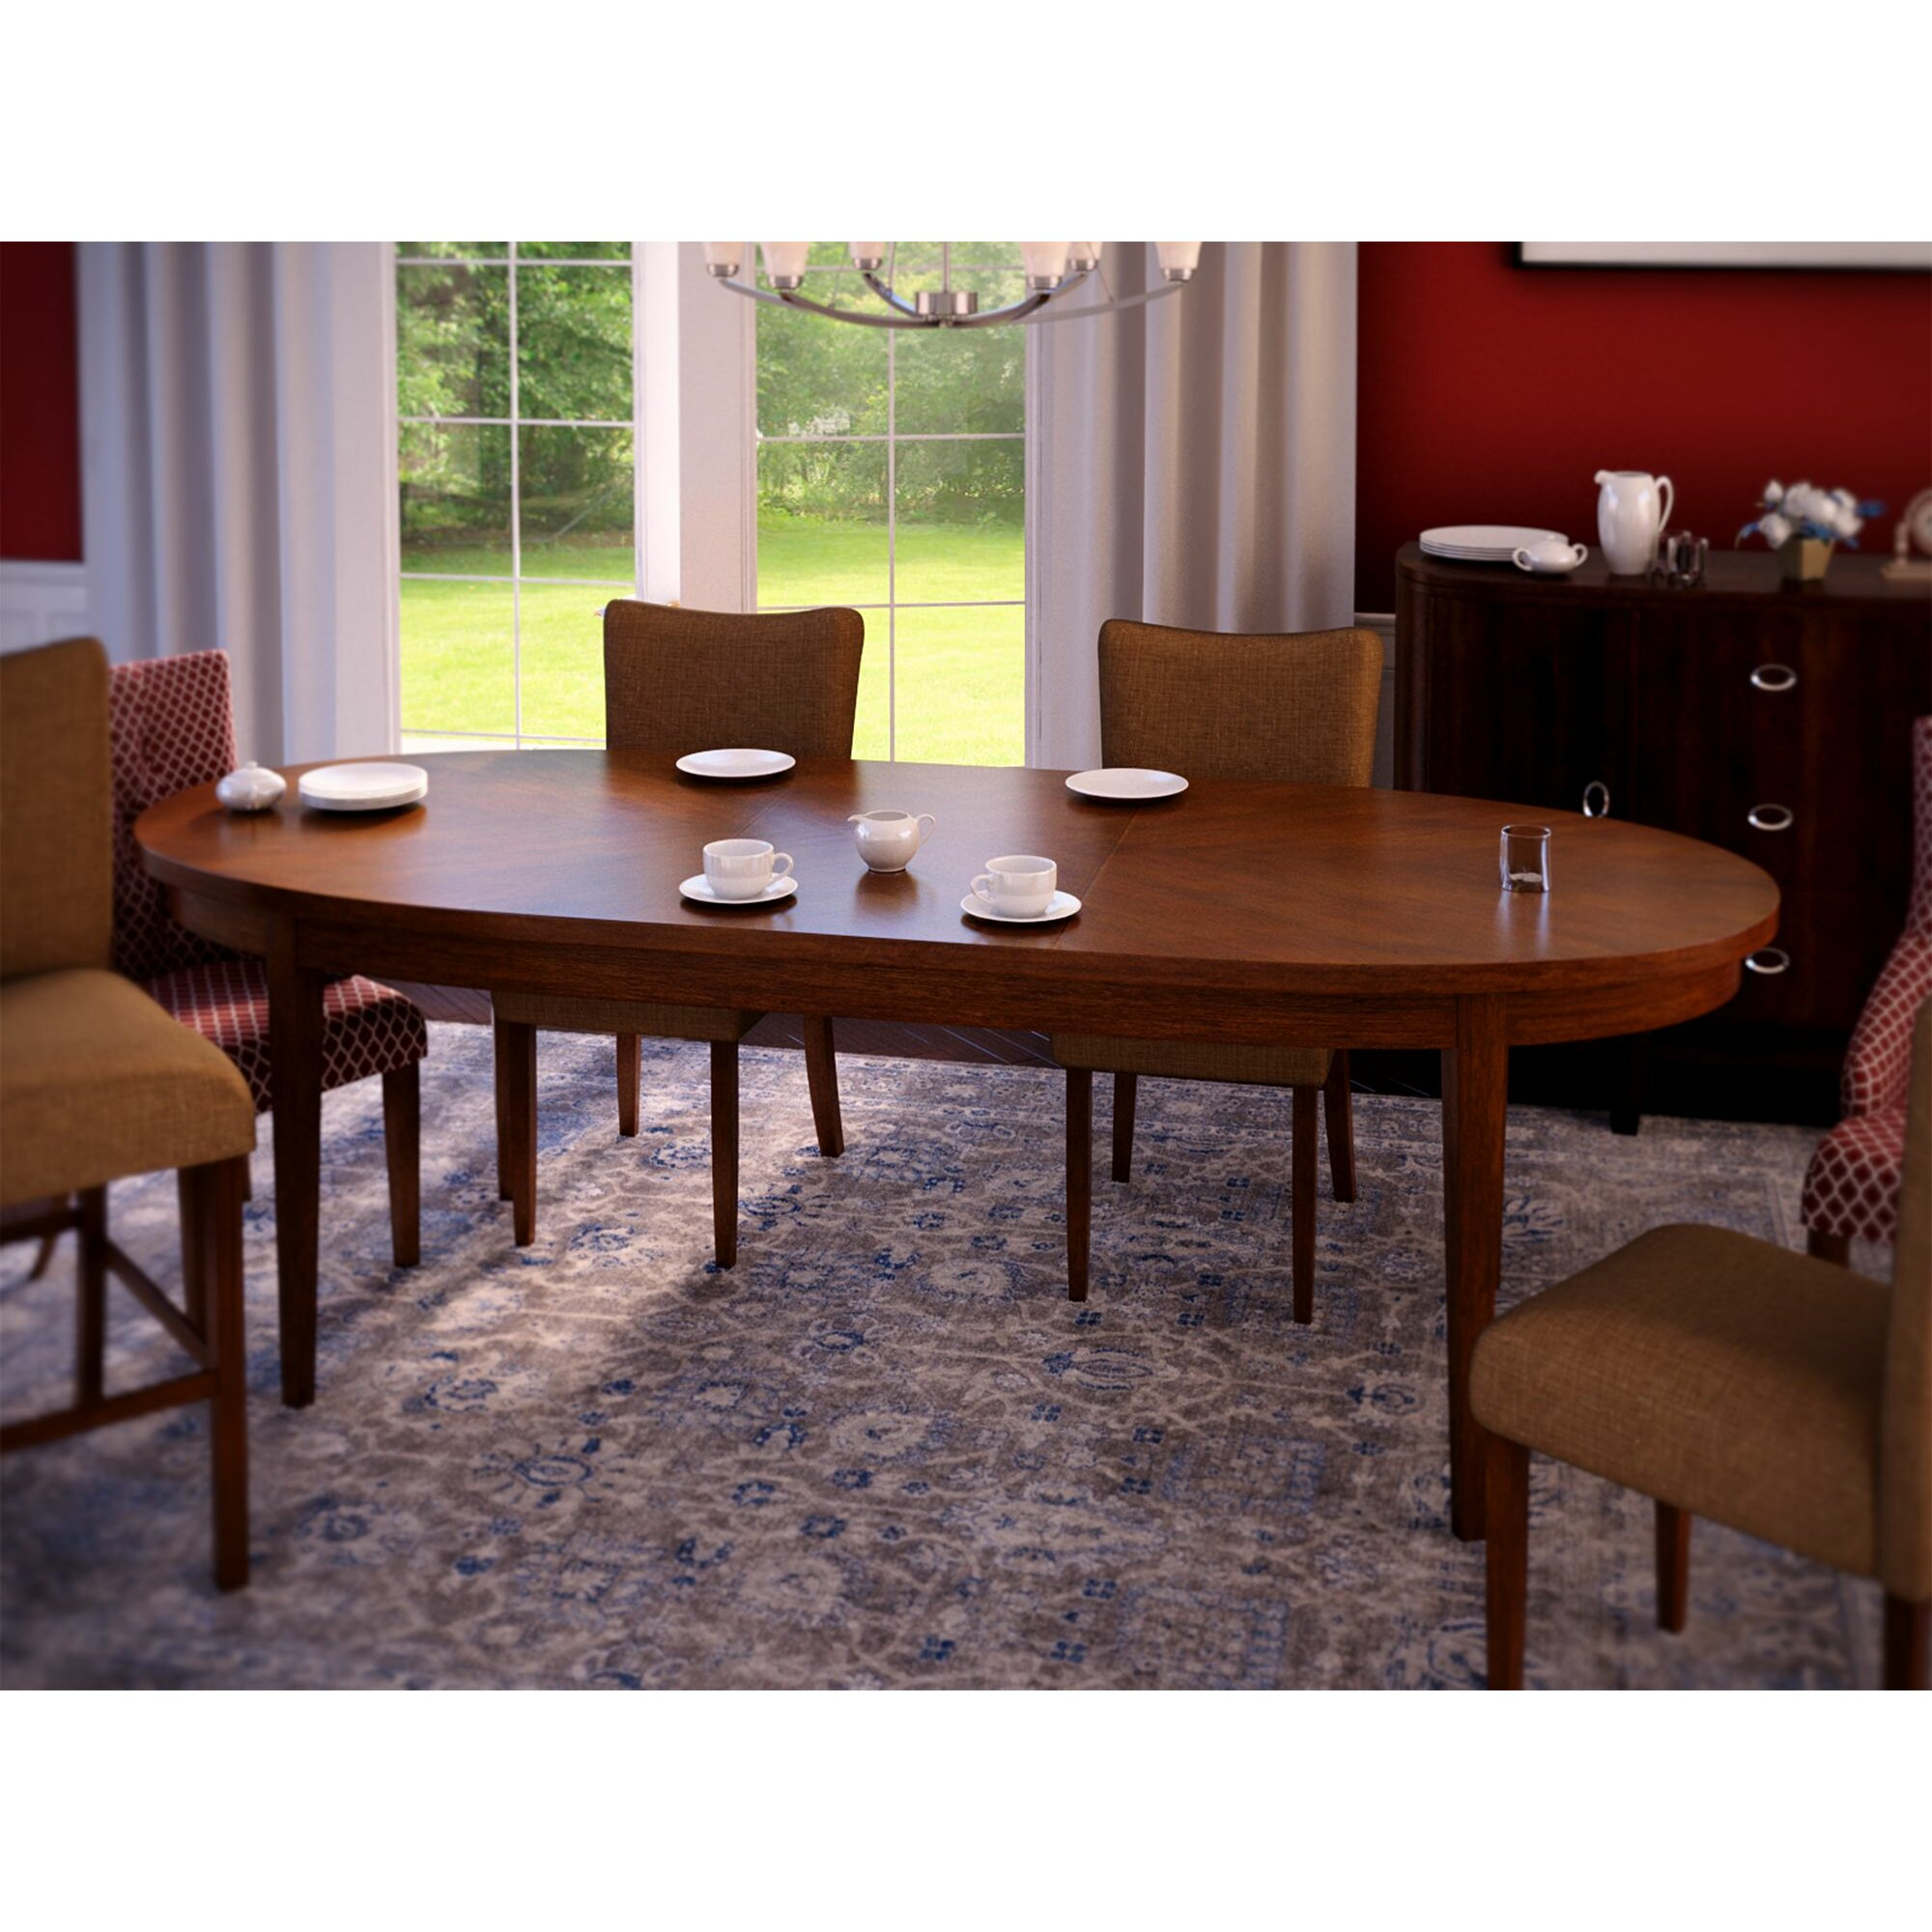 Three Posts Townville Extendable Dining Table amp Reviews  : Townville Extendable Dining Table THRE3316 from www.wayfair.com size 2000 x 2000 jpeg 590kB